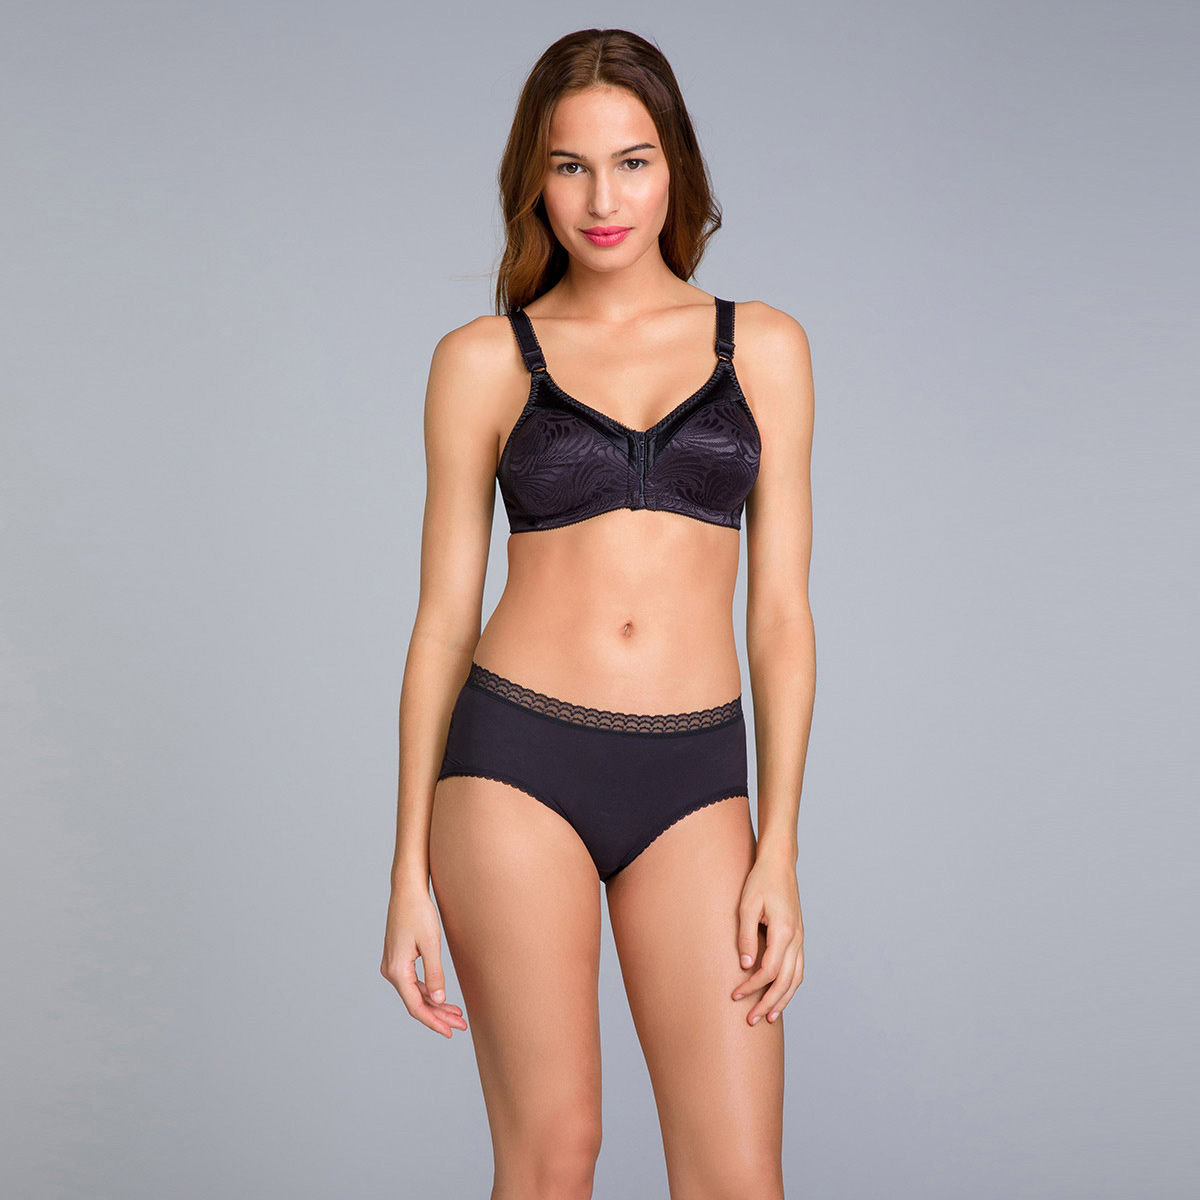 Reggiseno senza ferretto aperto davanti nero - Double Support, , PLAYTEX